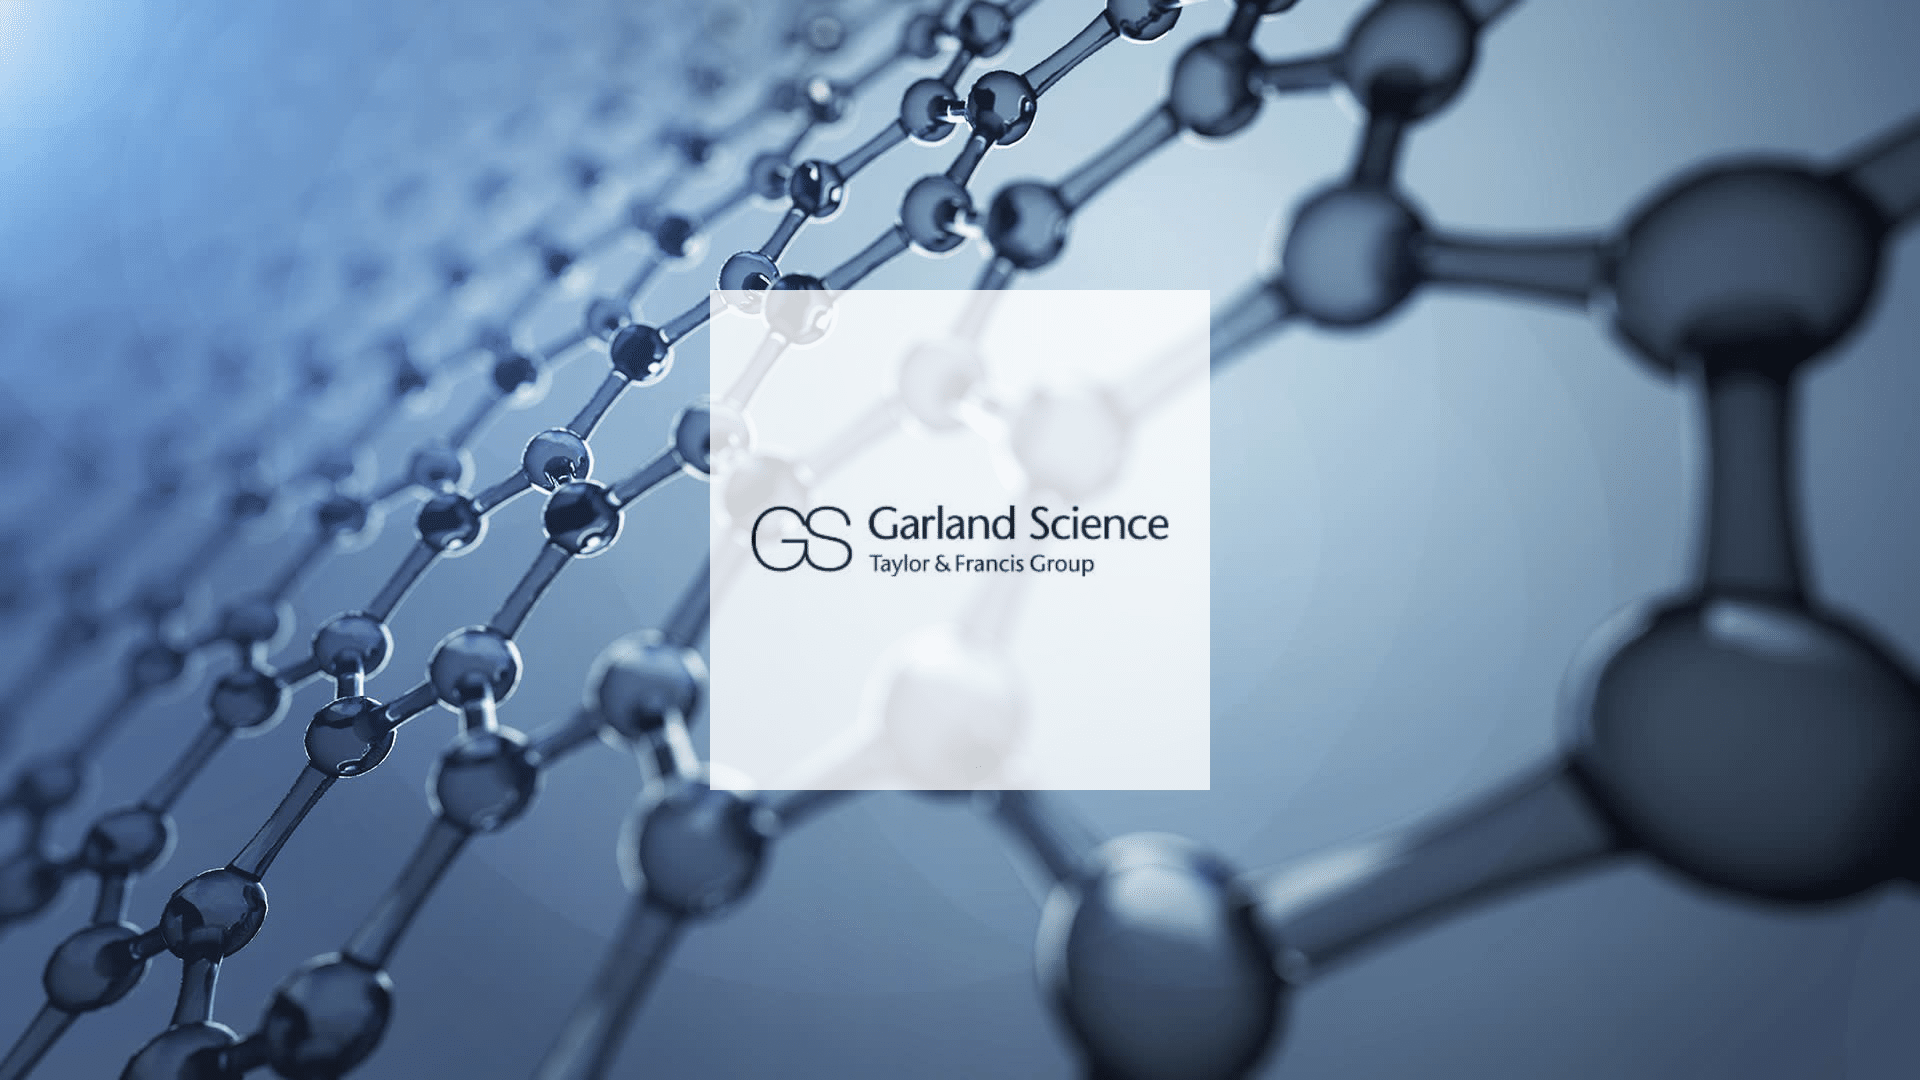 garland science